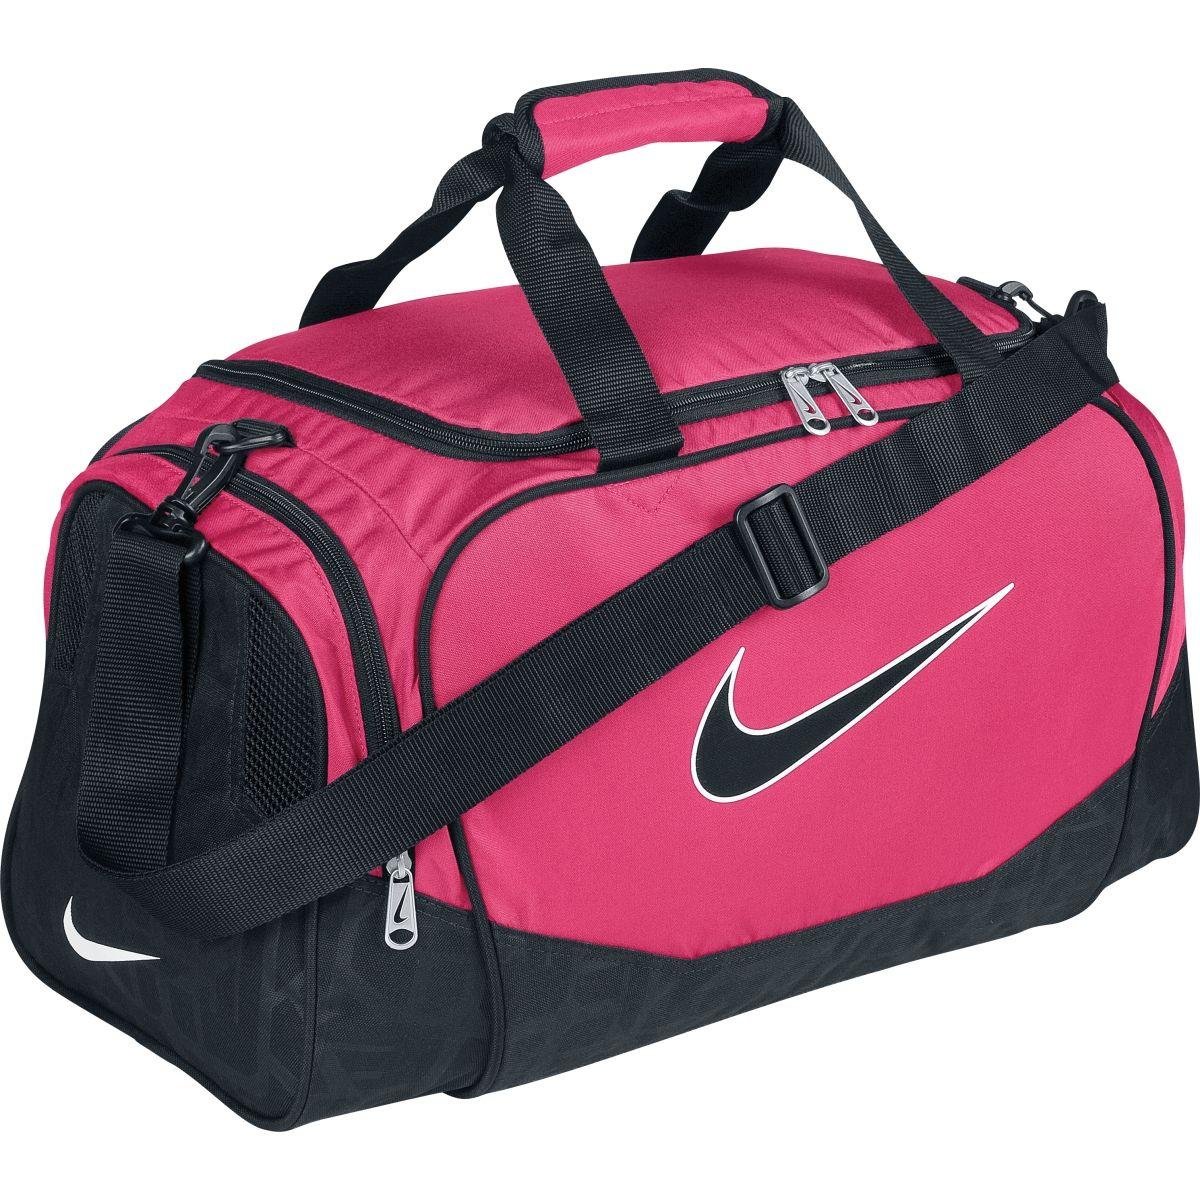 416321870e LARGE NIKE BRASILIA 5 DUFFEL DUFFLE BAG SPORTS TRAVEL CAMP BA3232-600 NWT  RED  NIKE